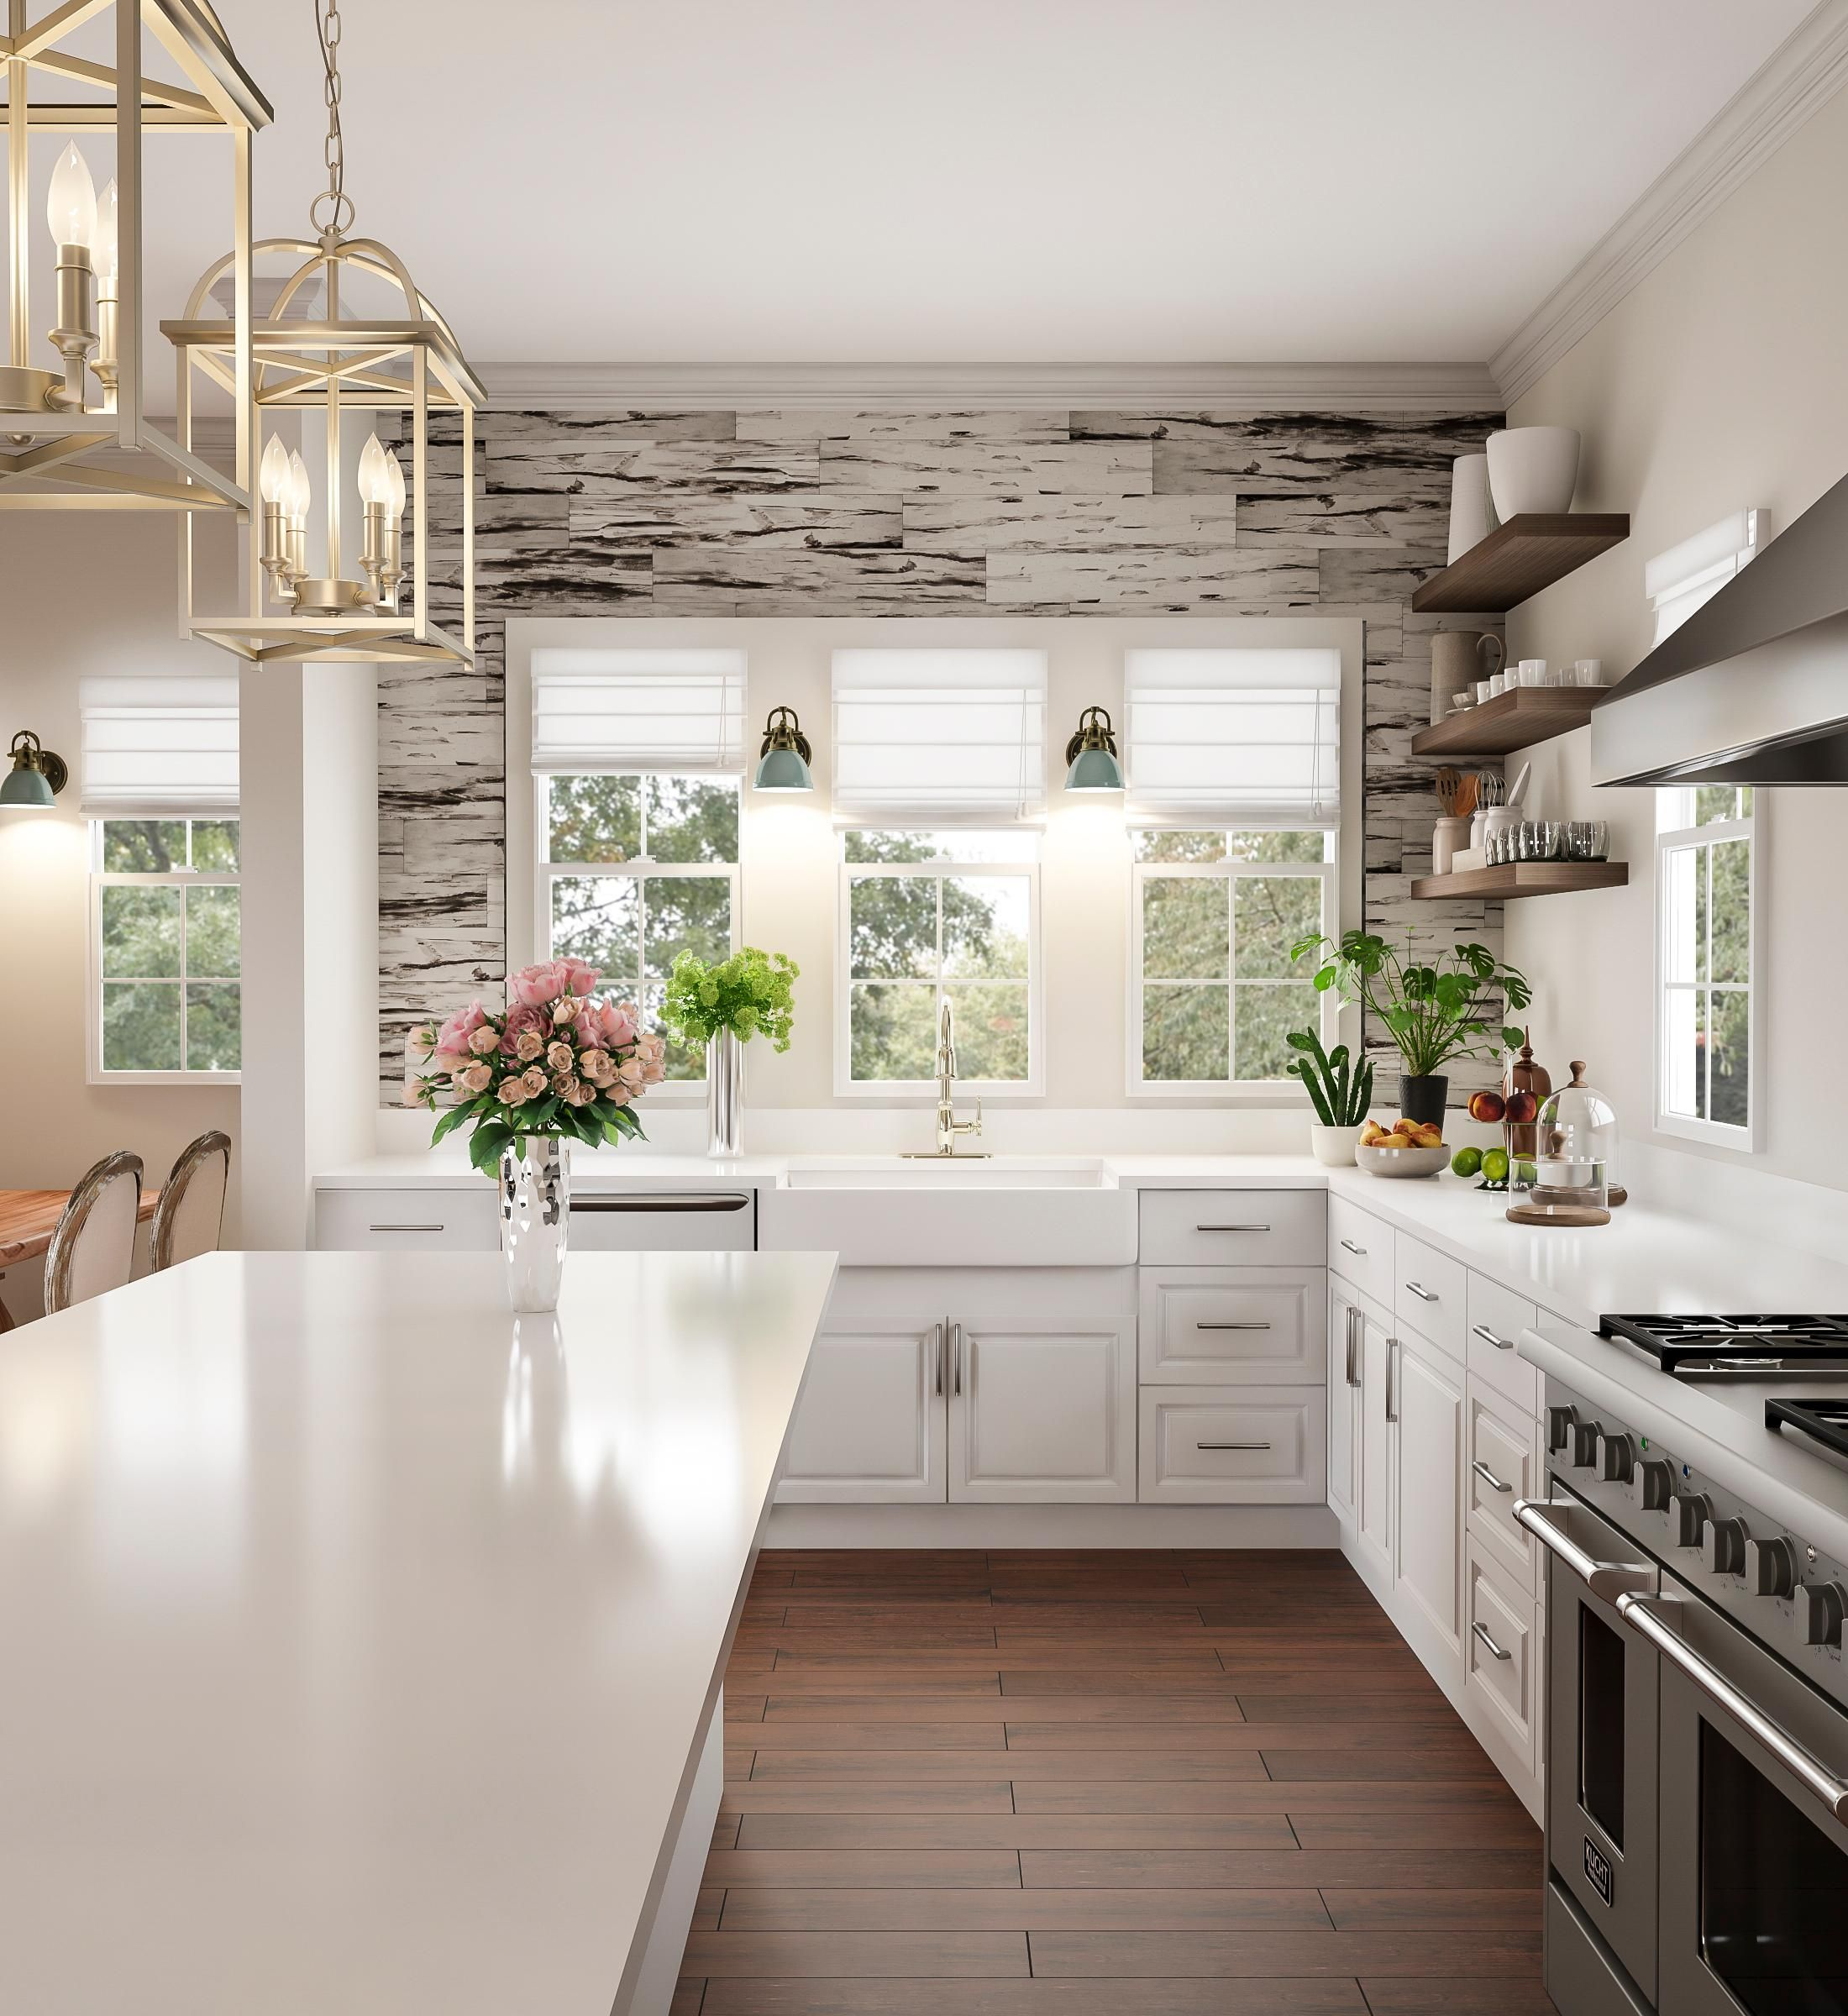 Glam up your kitchen galley with an incredible feature